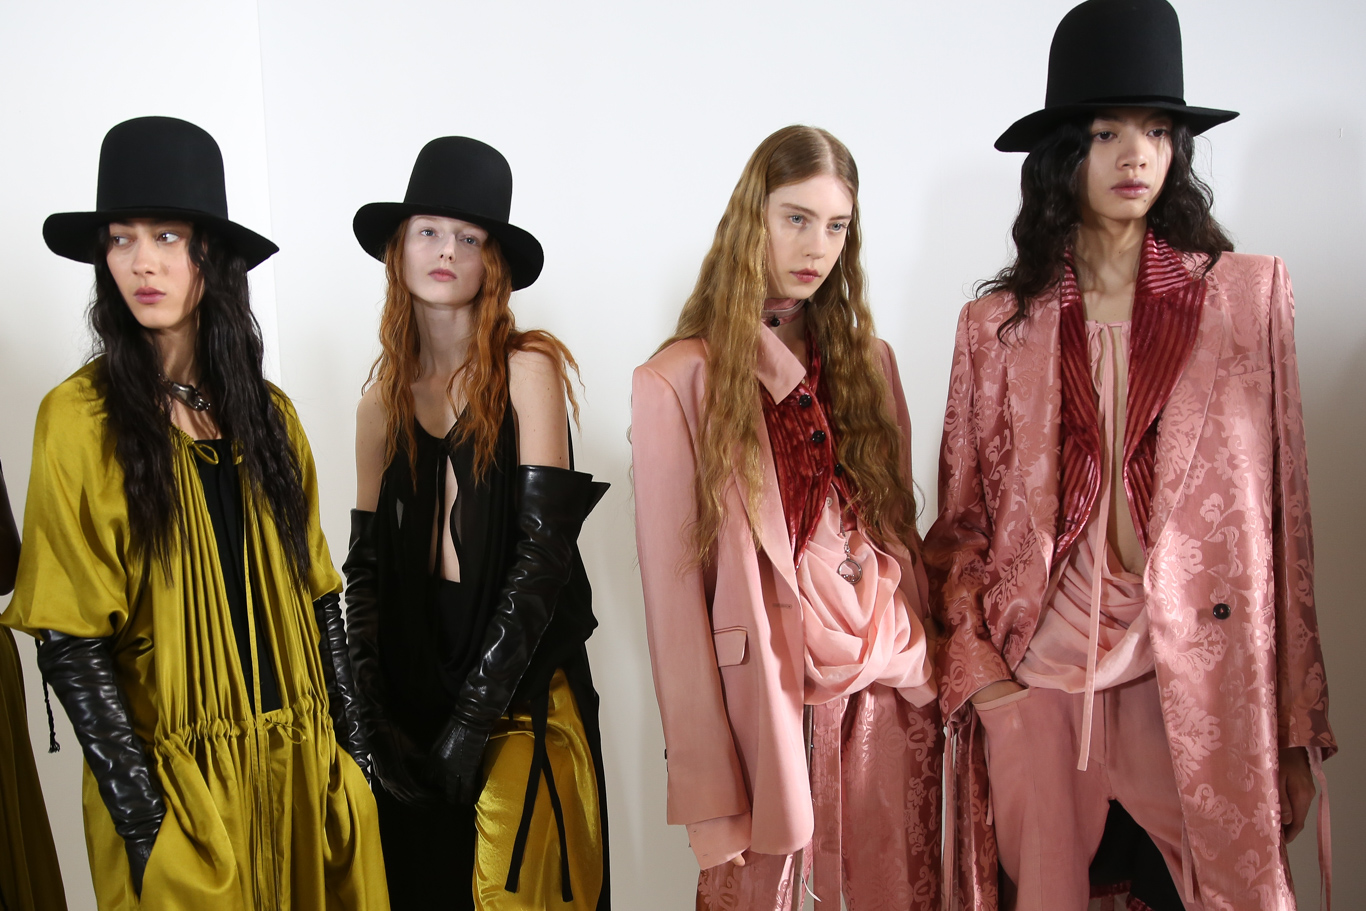 Backstage at Ann Demeulemeester RTW Fall 2019, photographed in Paris on February 28, 2019.